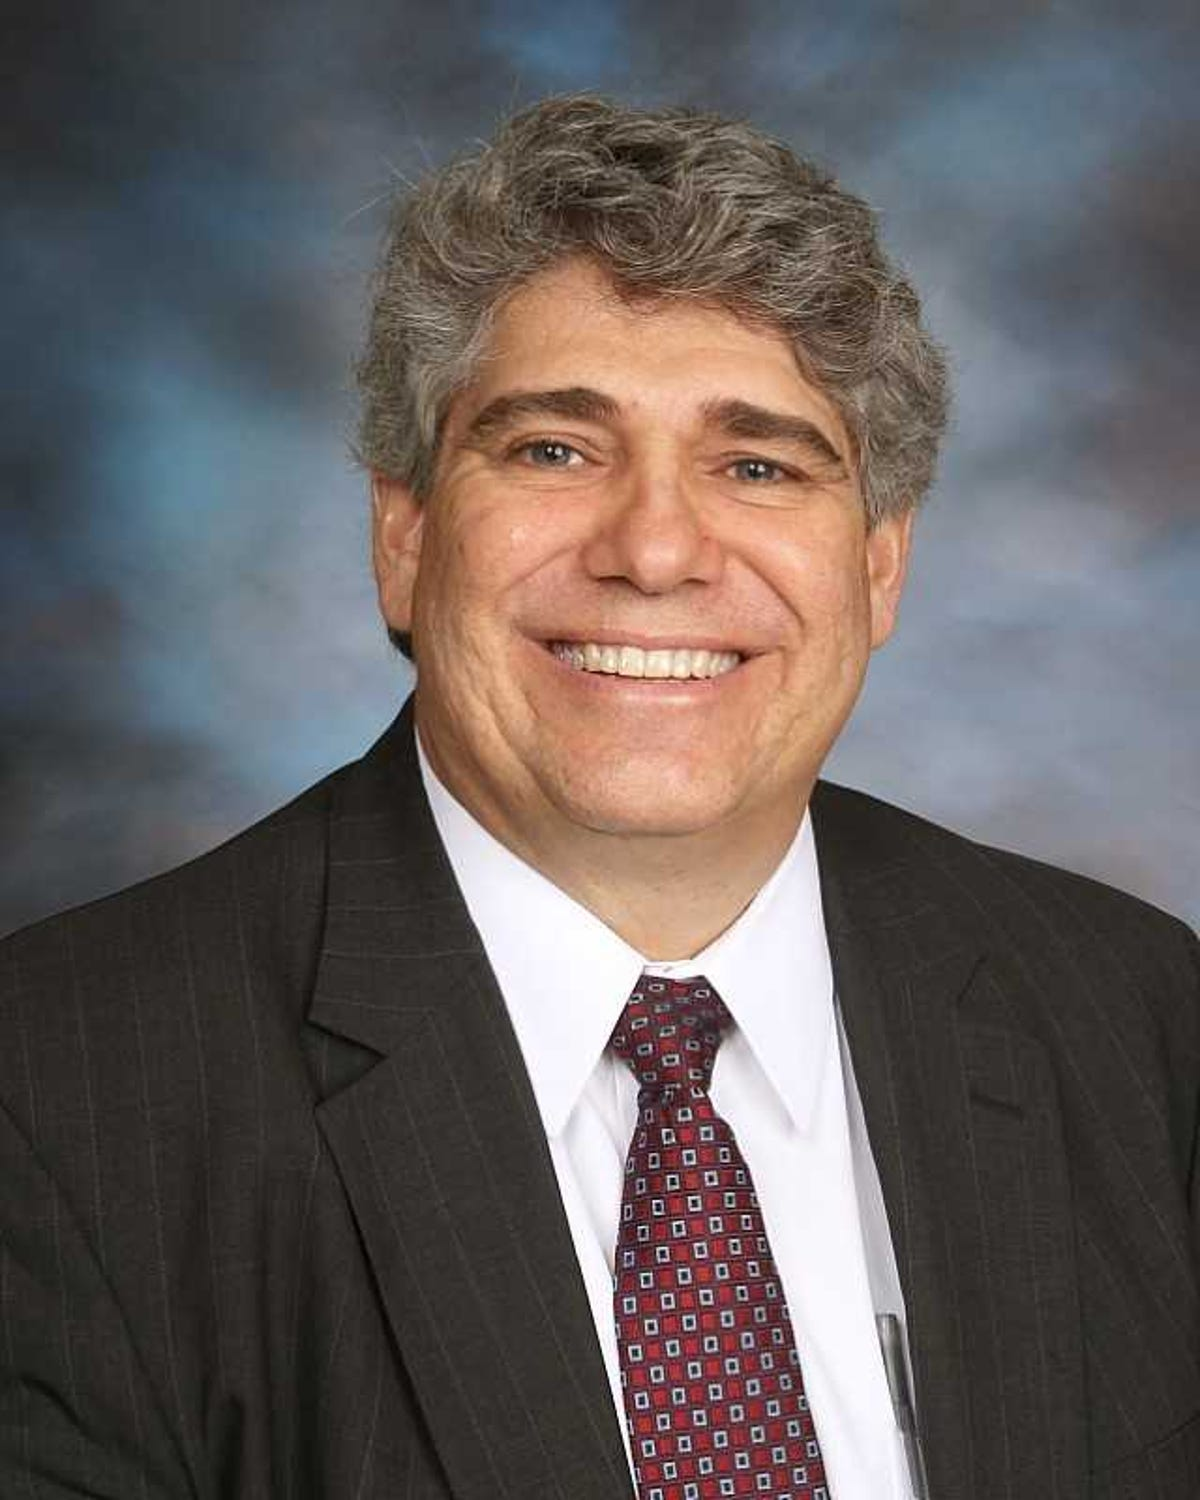 Jeff Dellutri to become new superintendent at Fox Point-Bayside